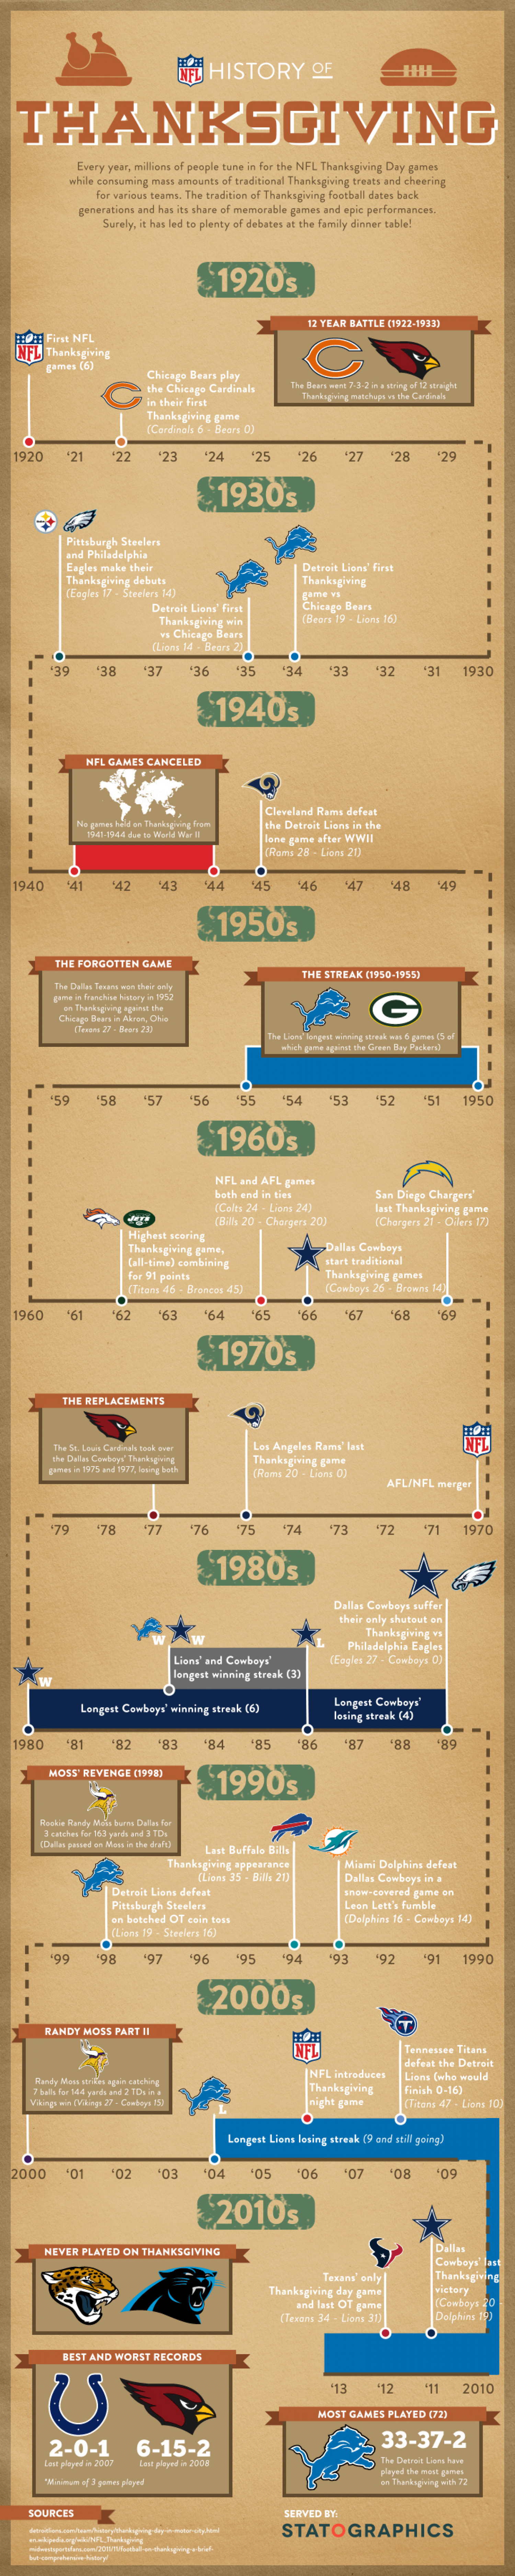 NFL on Thanksgiving Infographic